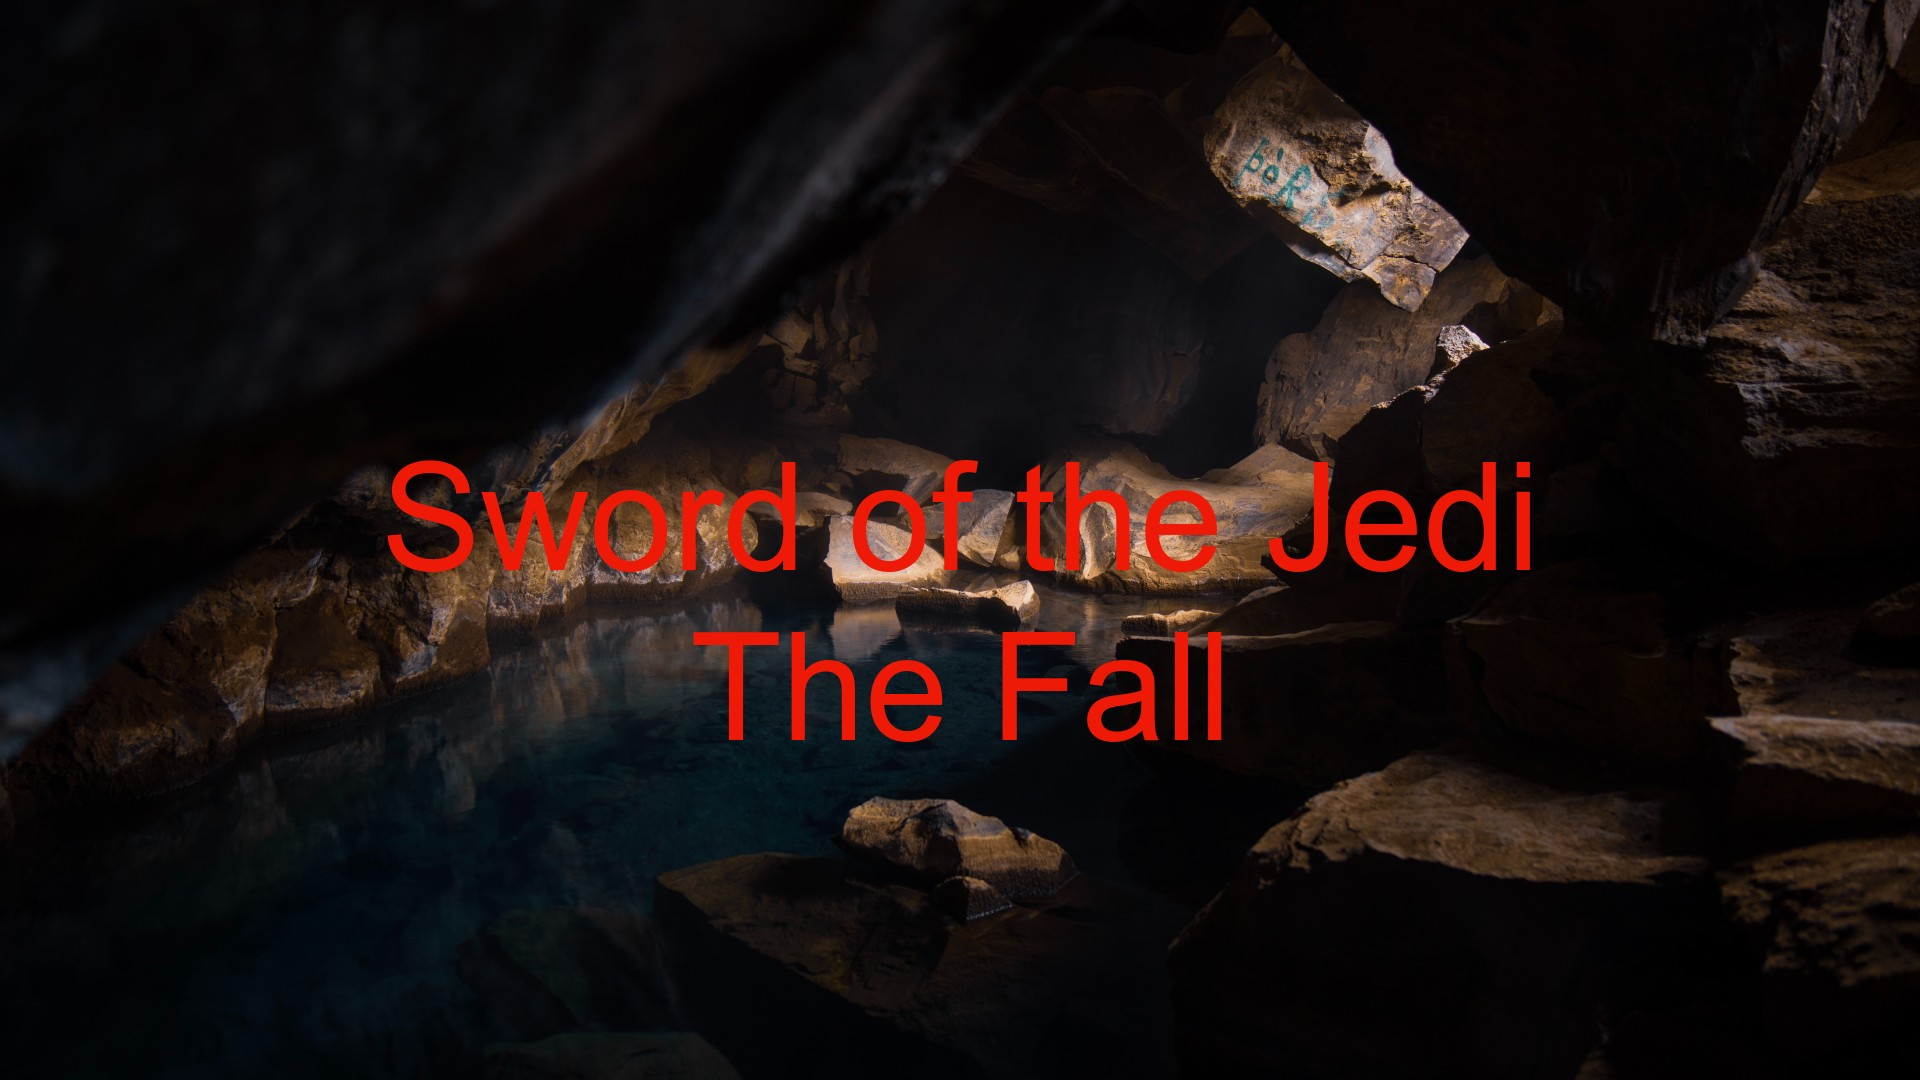 Sword of the Jedi: The Fall